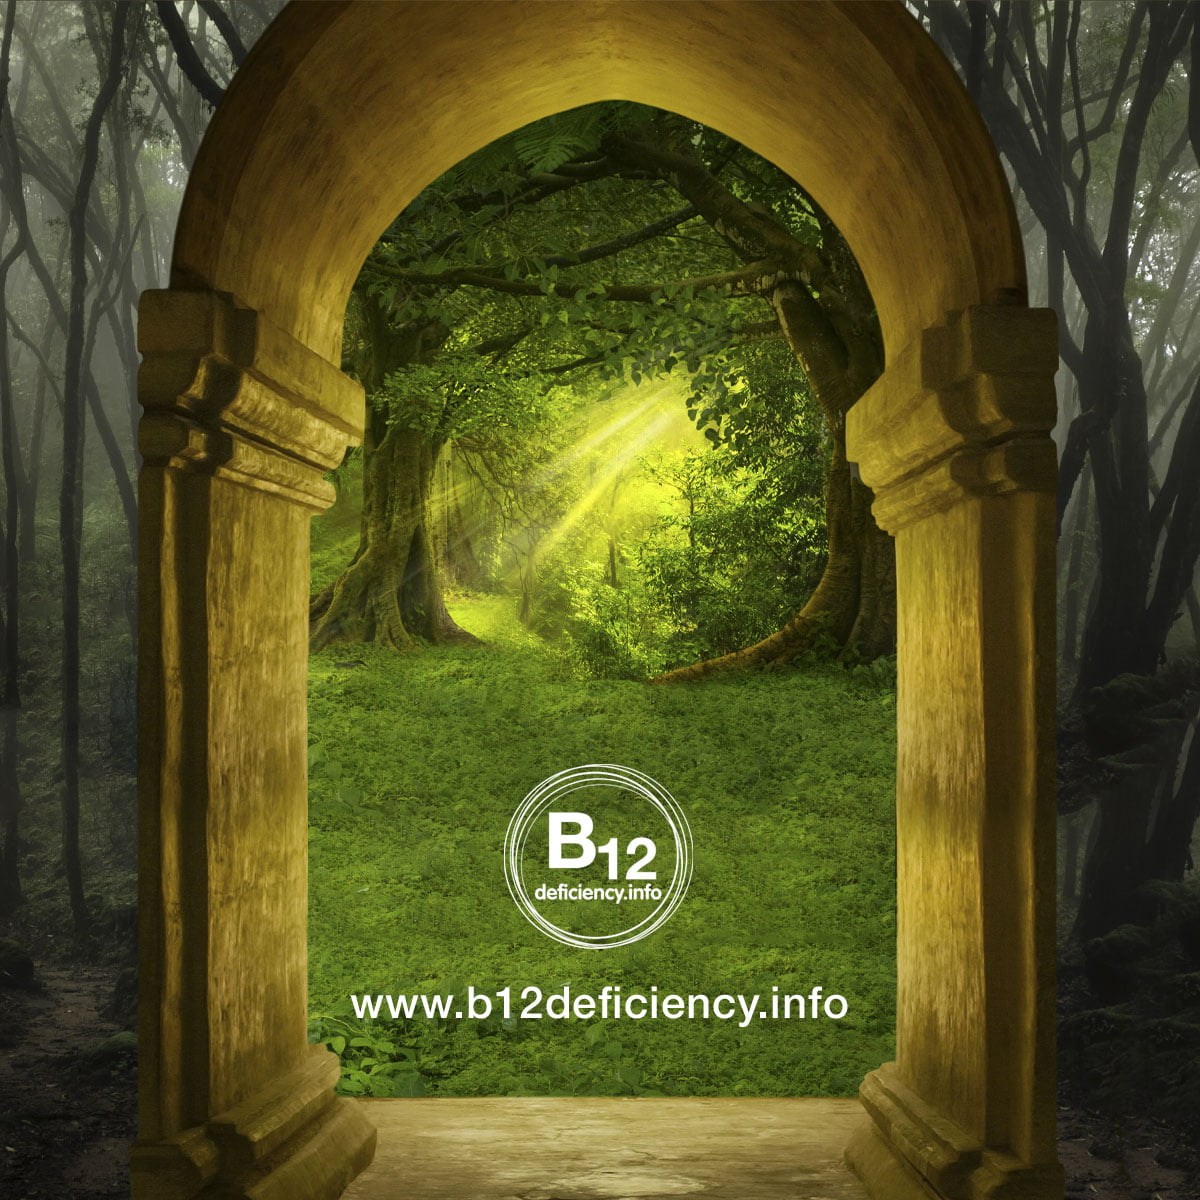 B12 deficiency, the fantasy & the reality